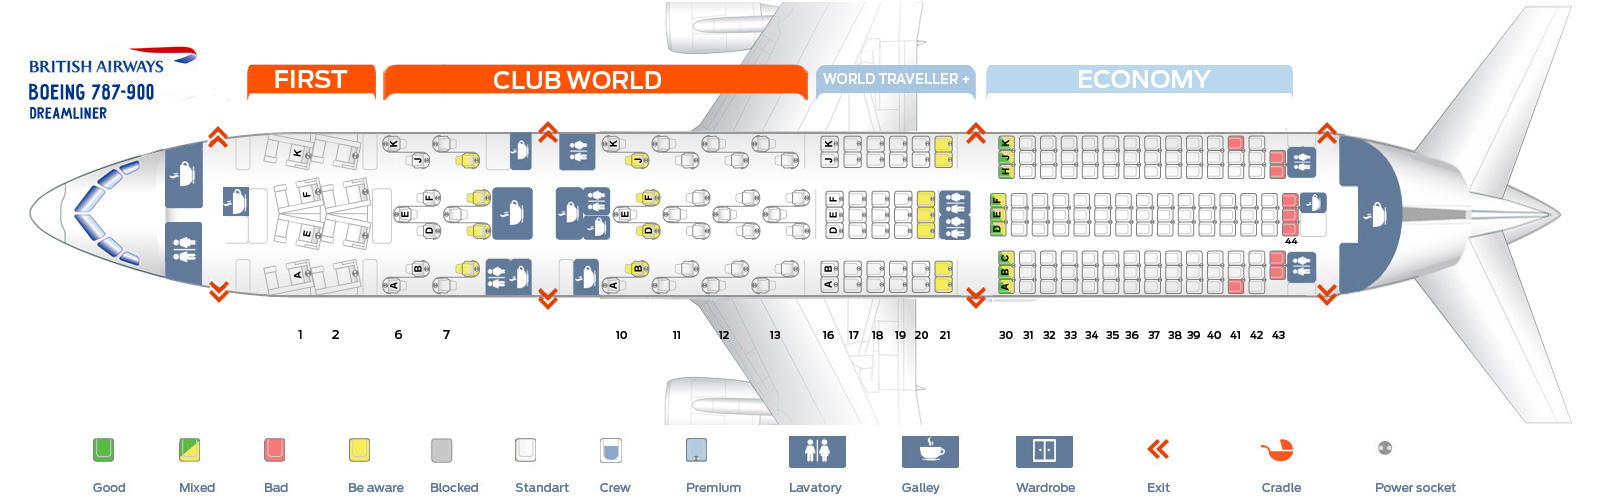 Dreamliner Seat Map Brokeasshomecom - Us airways seat map